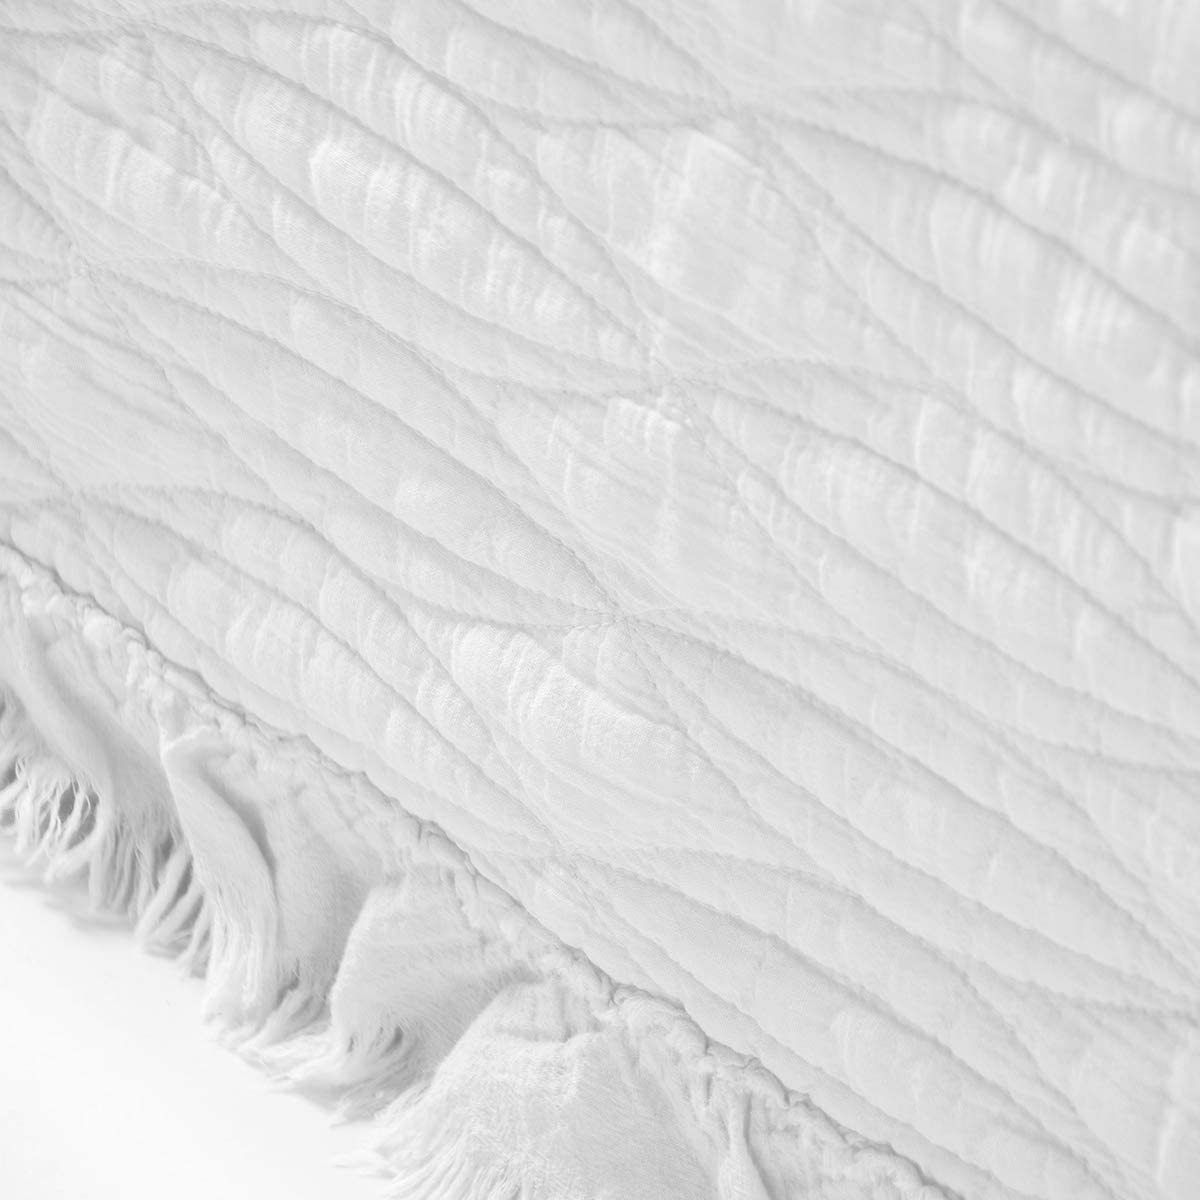 White 1 Quilt and 2 Pillow Shams NIUD/ÉCOR HOME 3-Piece Quilt Set Cotton Reversible Stone Washed Coverlet Set with Ruffle Full//Queen